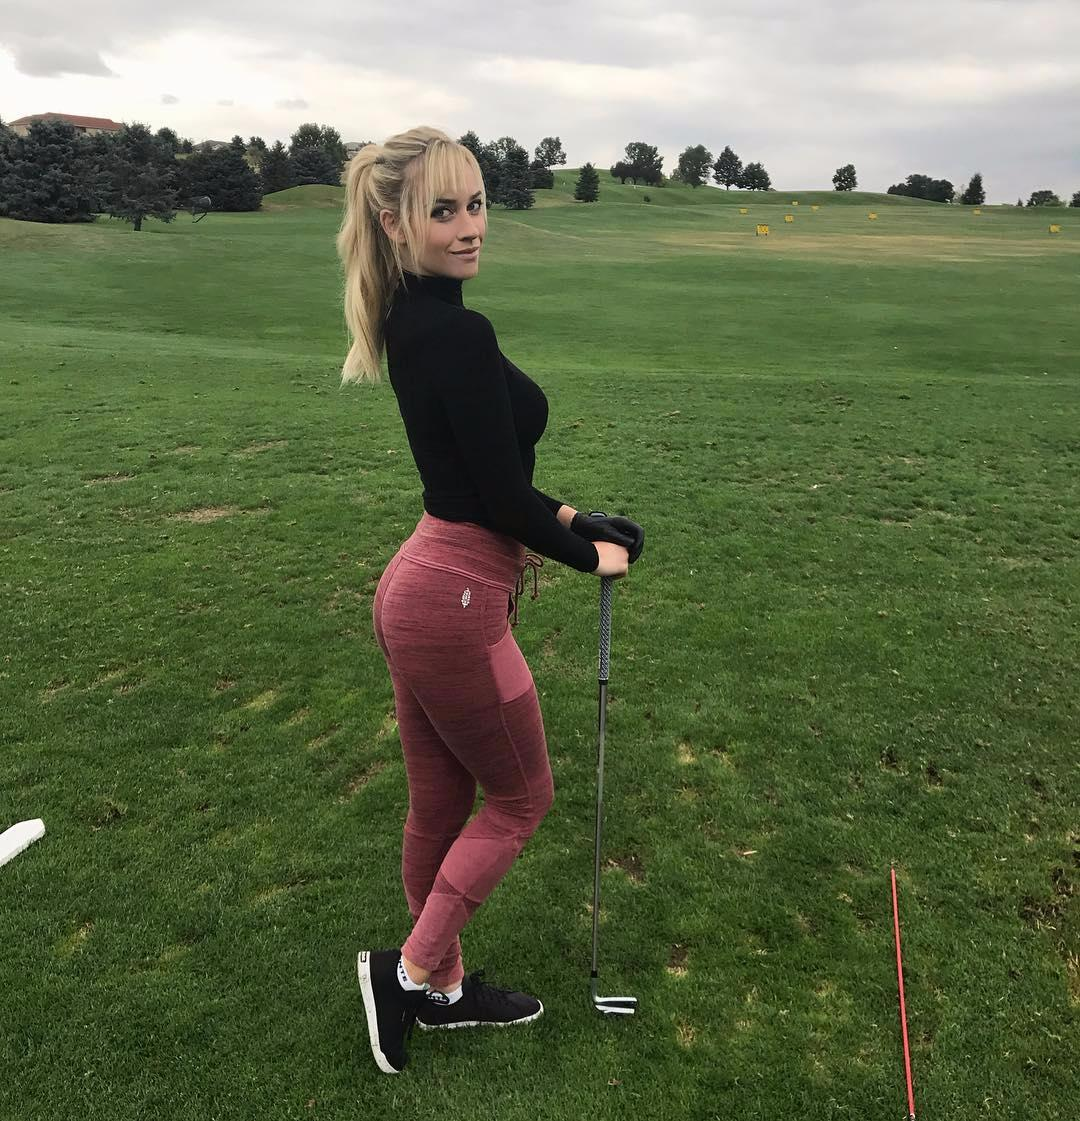 The golfer has her own game to back up her social media profile